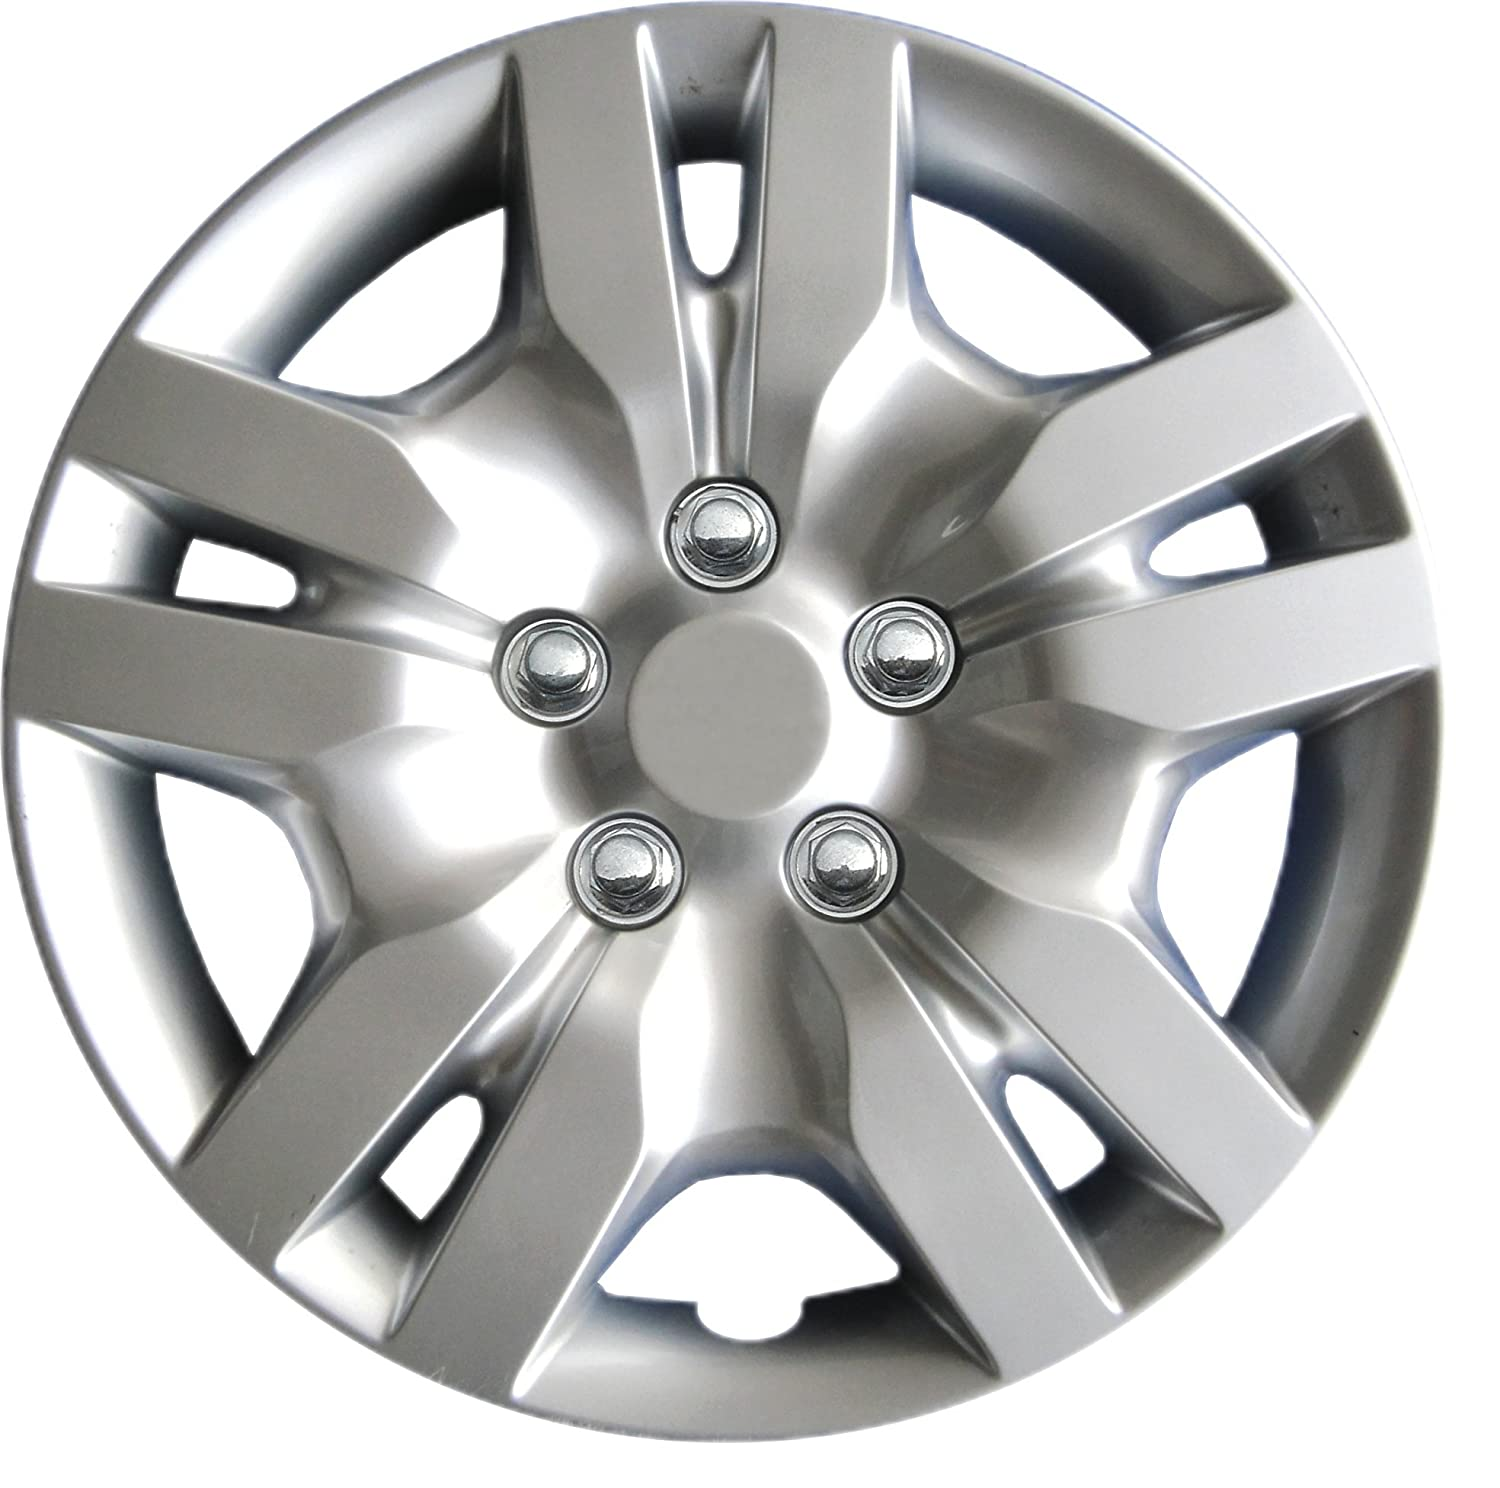 Drive Accessories 1036 Silver 16' ABS Plastic Aftermarket Wheel Cover